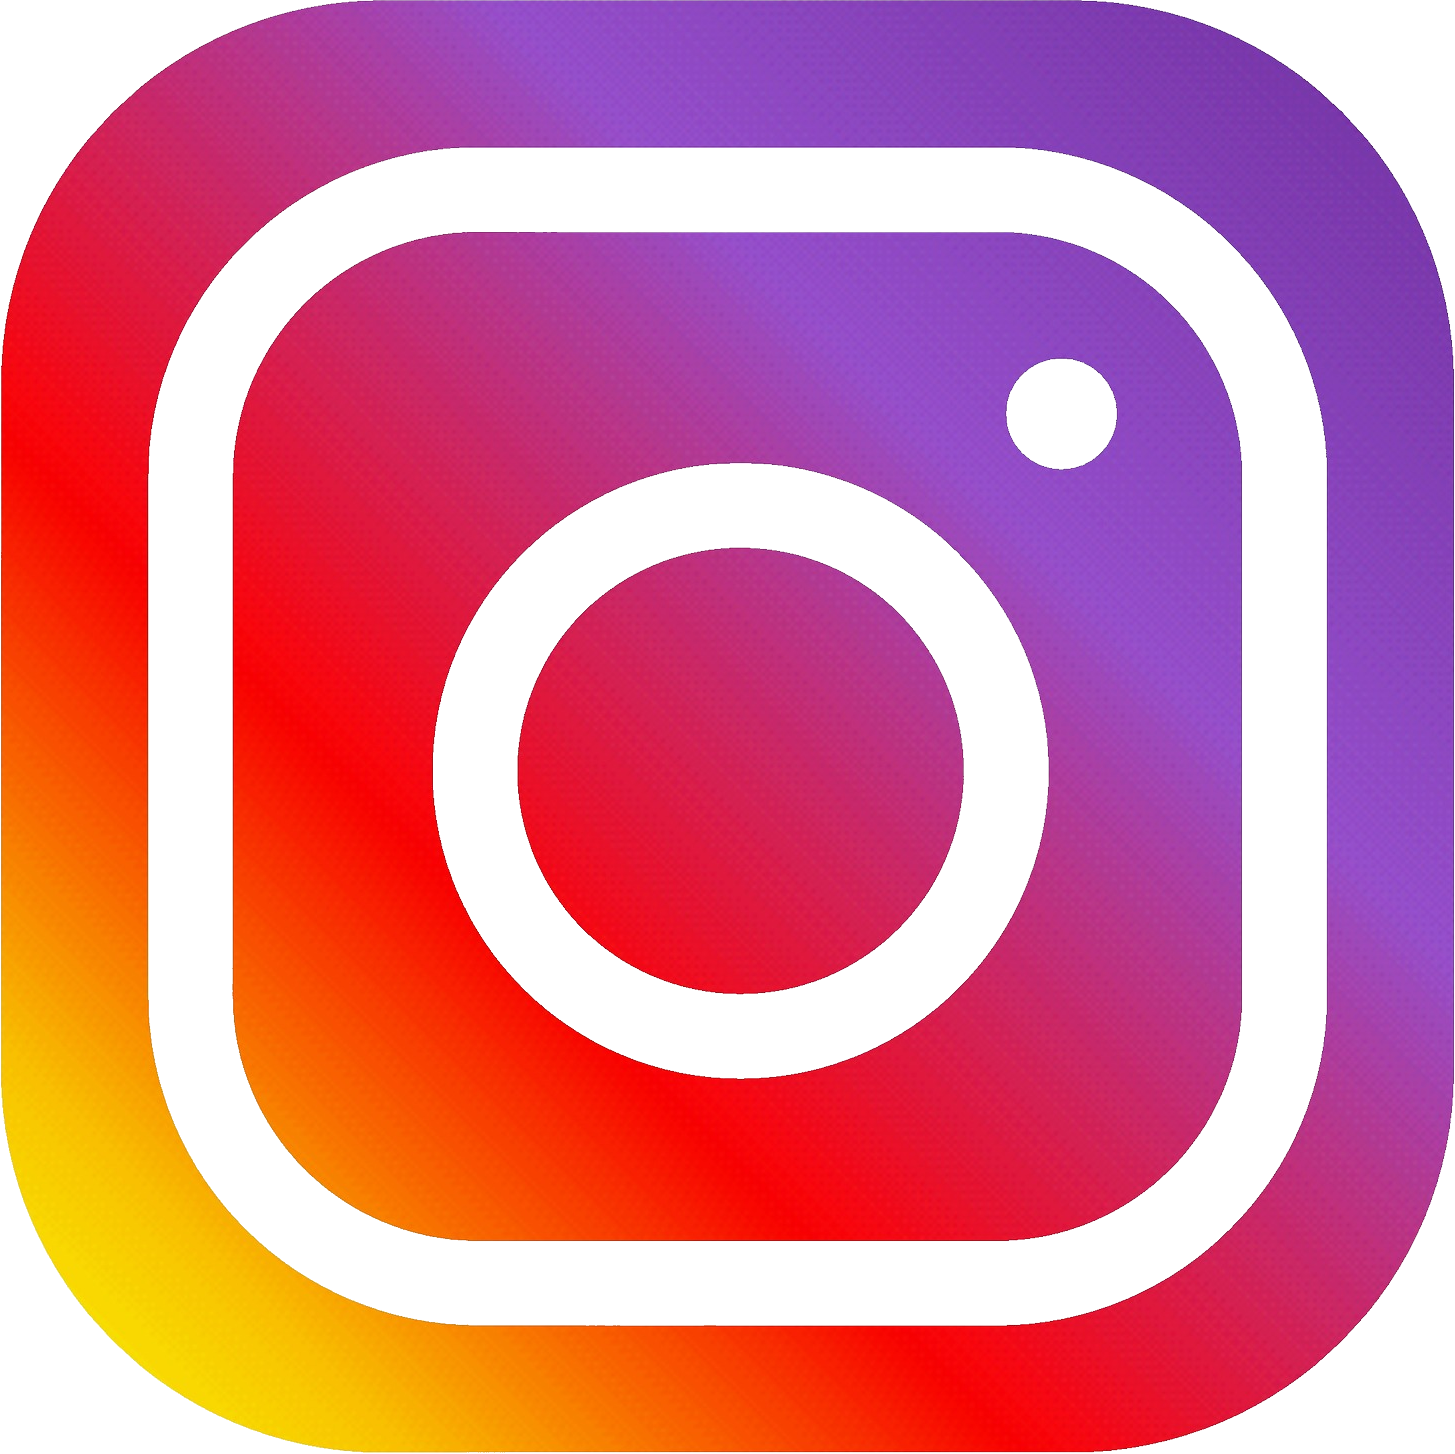 Instagram logo and link to dream club